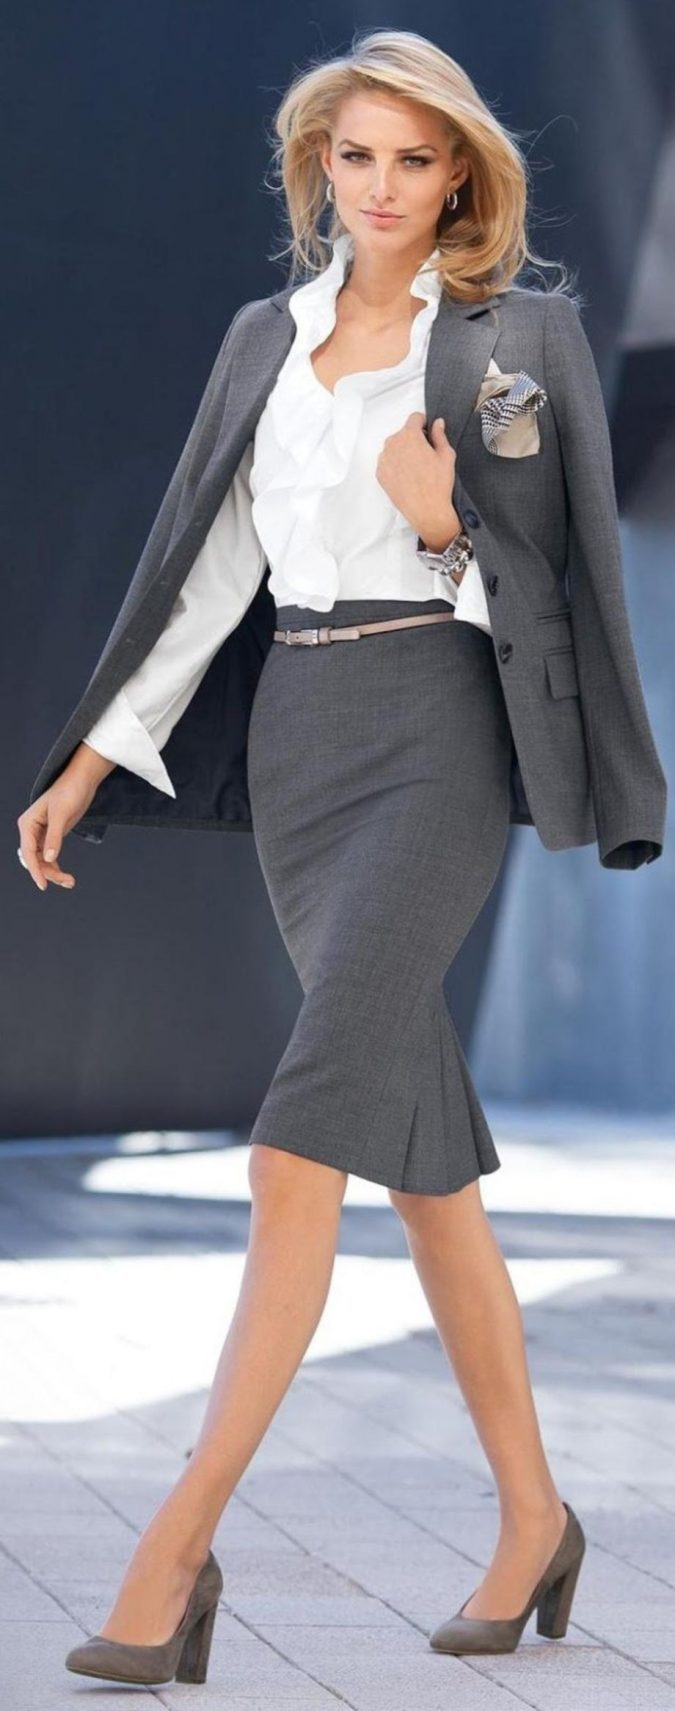 summer-work-outfit-skirt-suit-2-675x1711